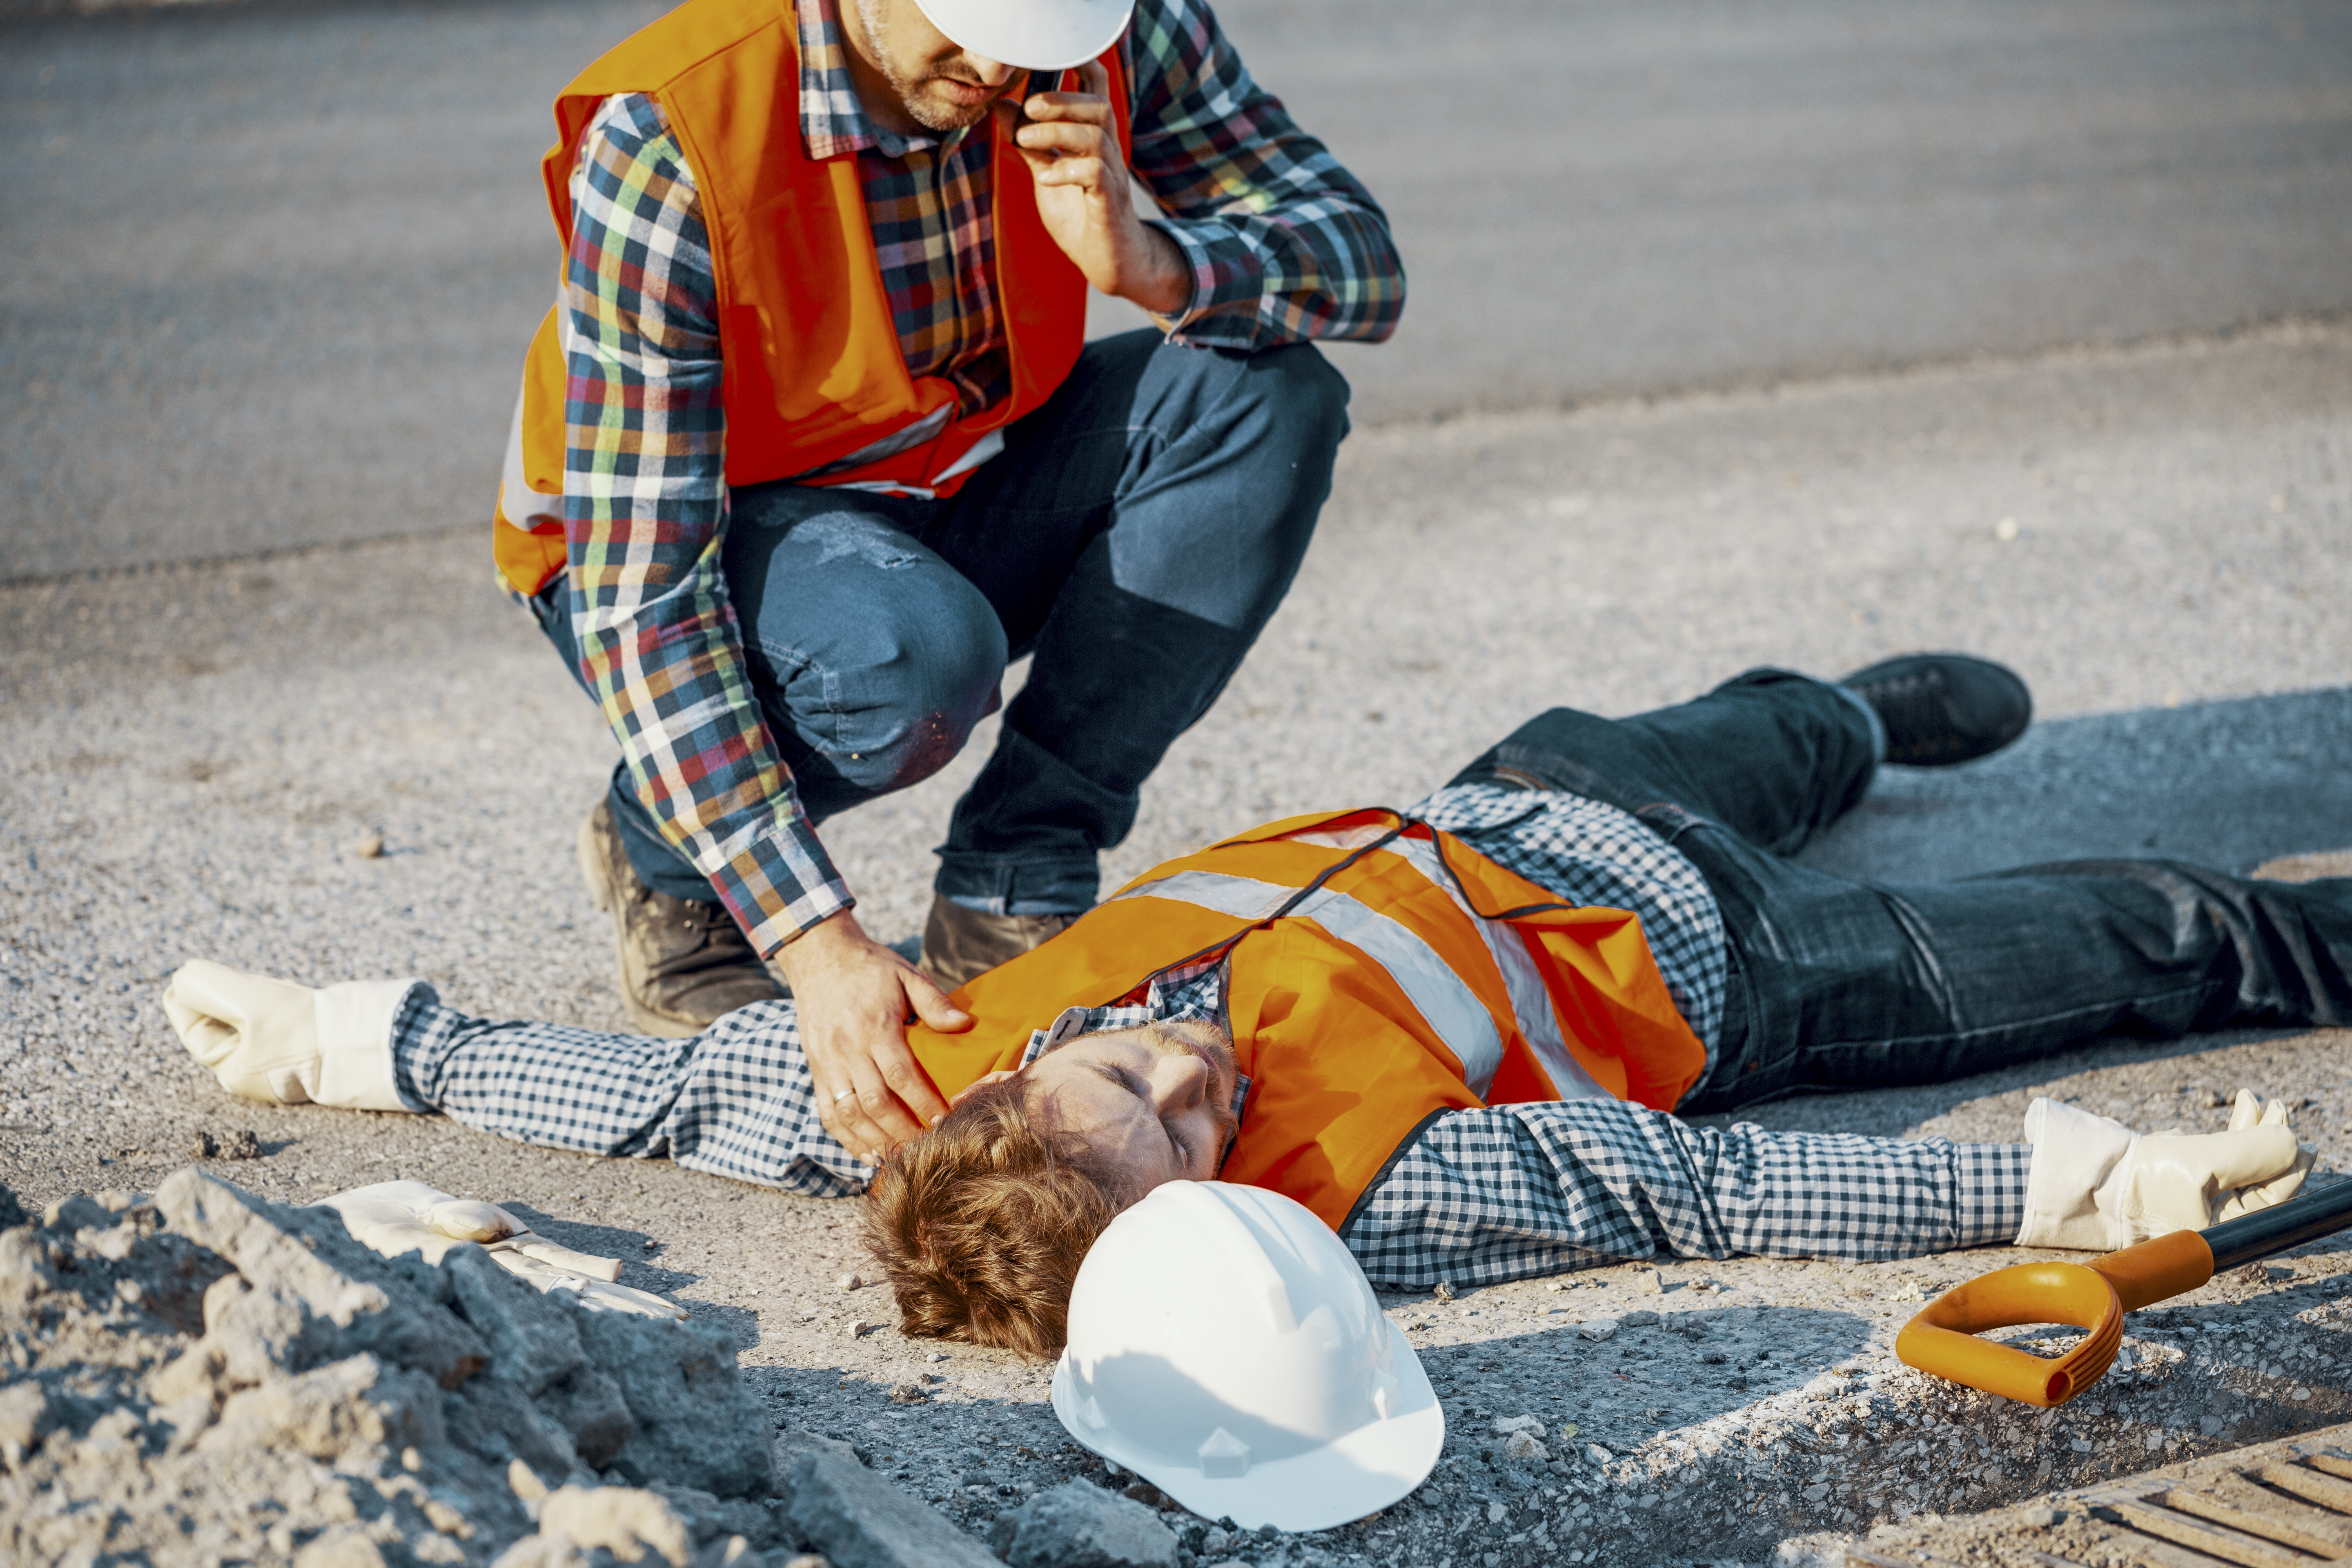 Catastrophic Construction Site Accidents and Injuries